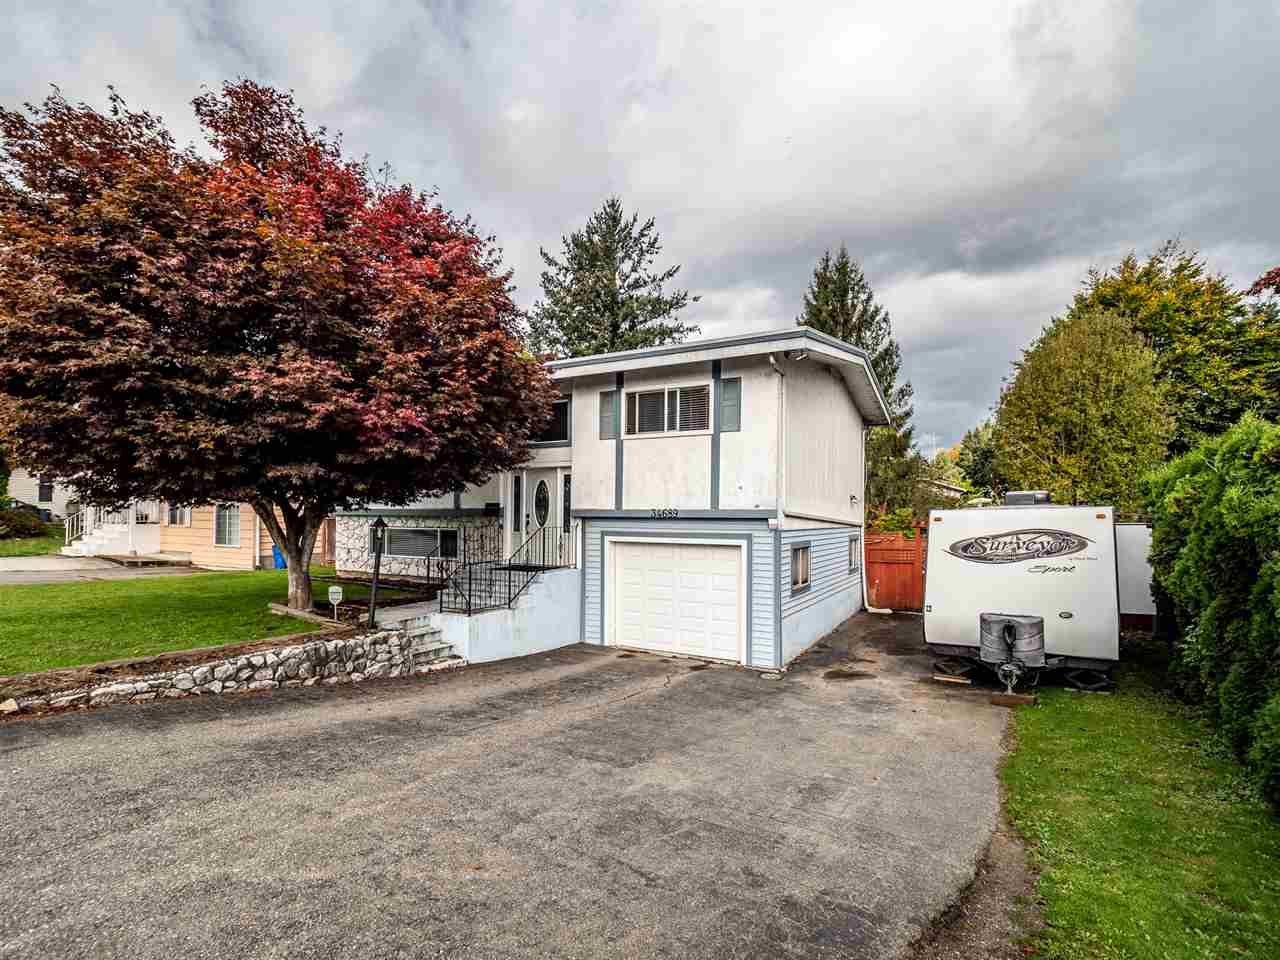 Main Photo: 34689 MARSHALL ROAD in Abbotsford: Abbotsford East House for sale : MLS®# R2511278